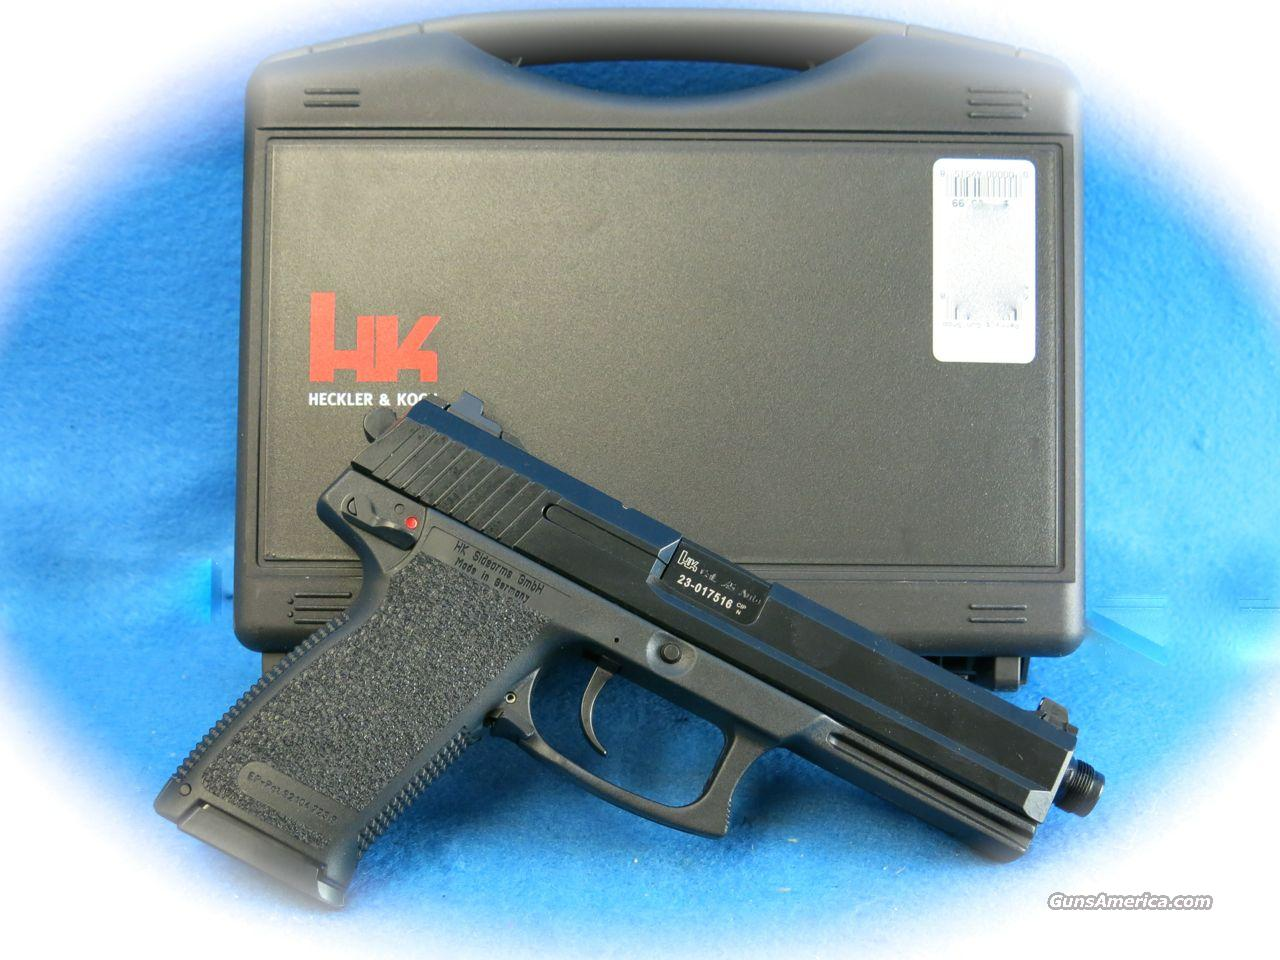 Heckler & Koch Mark 23 .45 ACP Tactical Pistol **New**  Guns > Pistols > Heckler & Koch Pistols > Polymer Frame